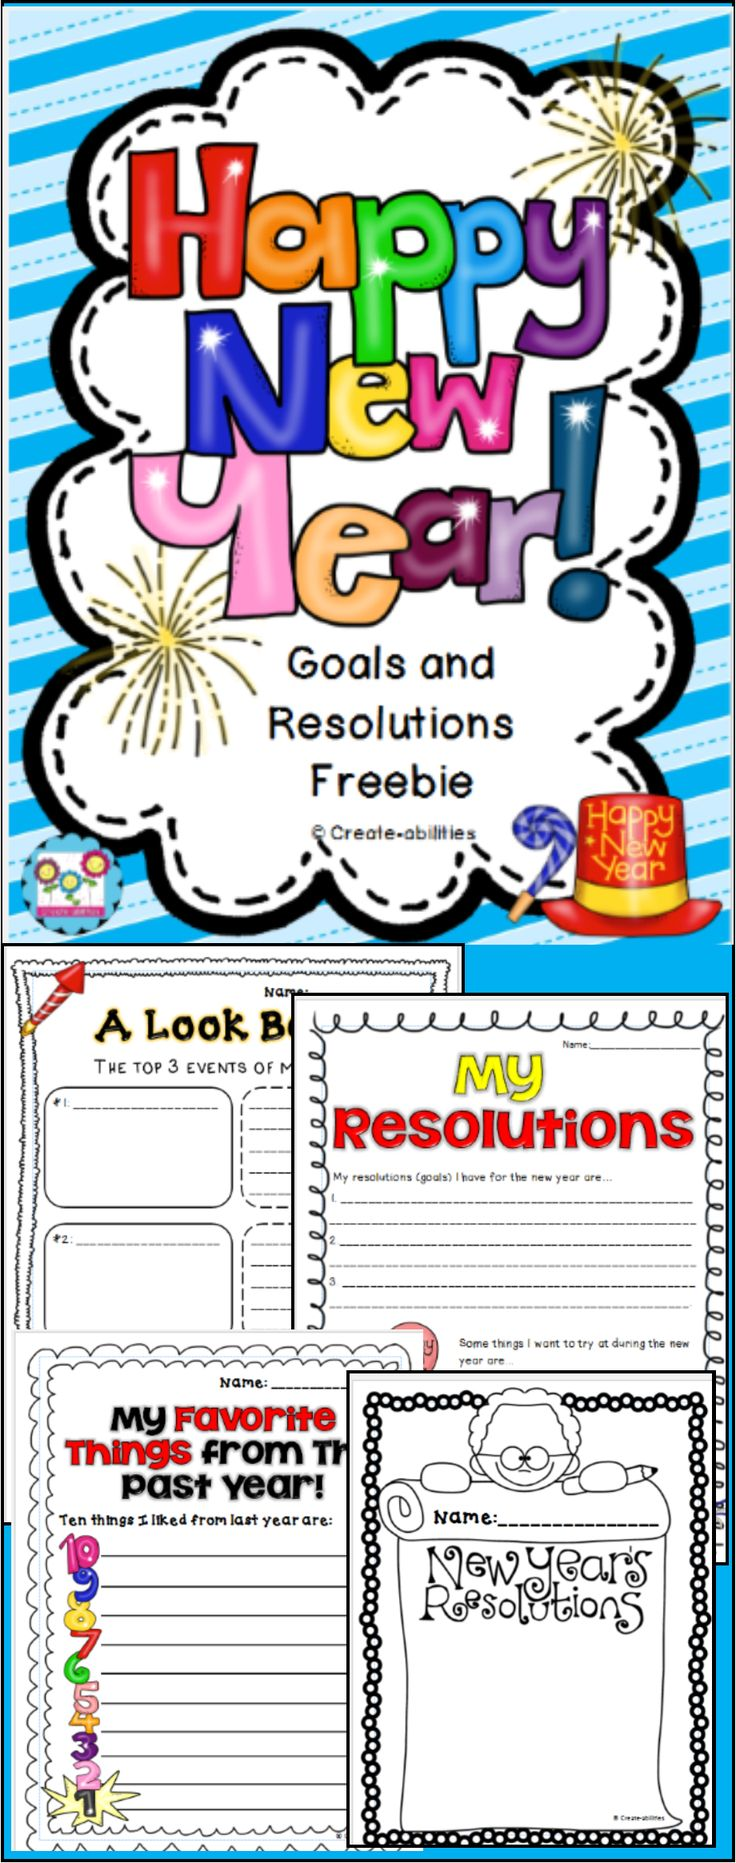 creative writing lesson ideas ks1 A resource with a worksheet and 6 different ideas for creative writing activities.